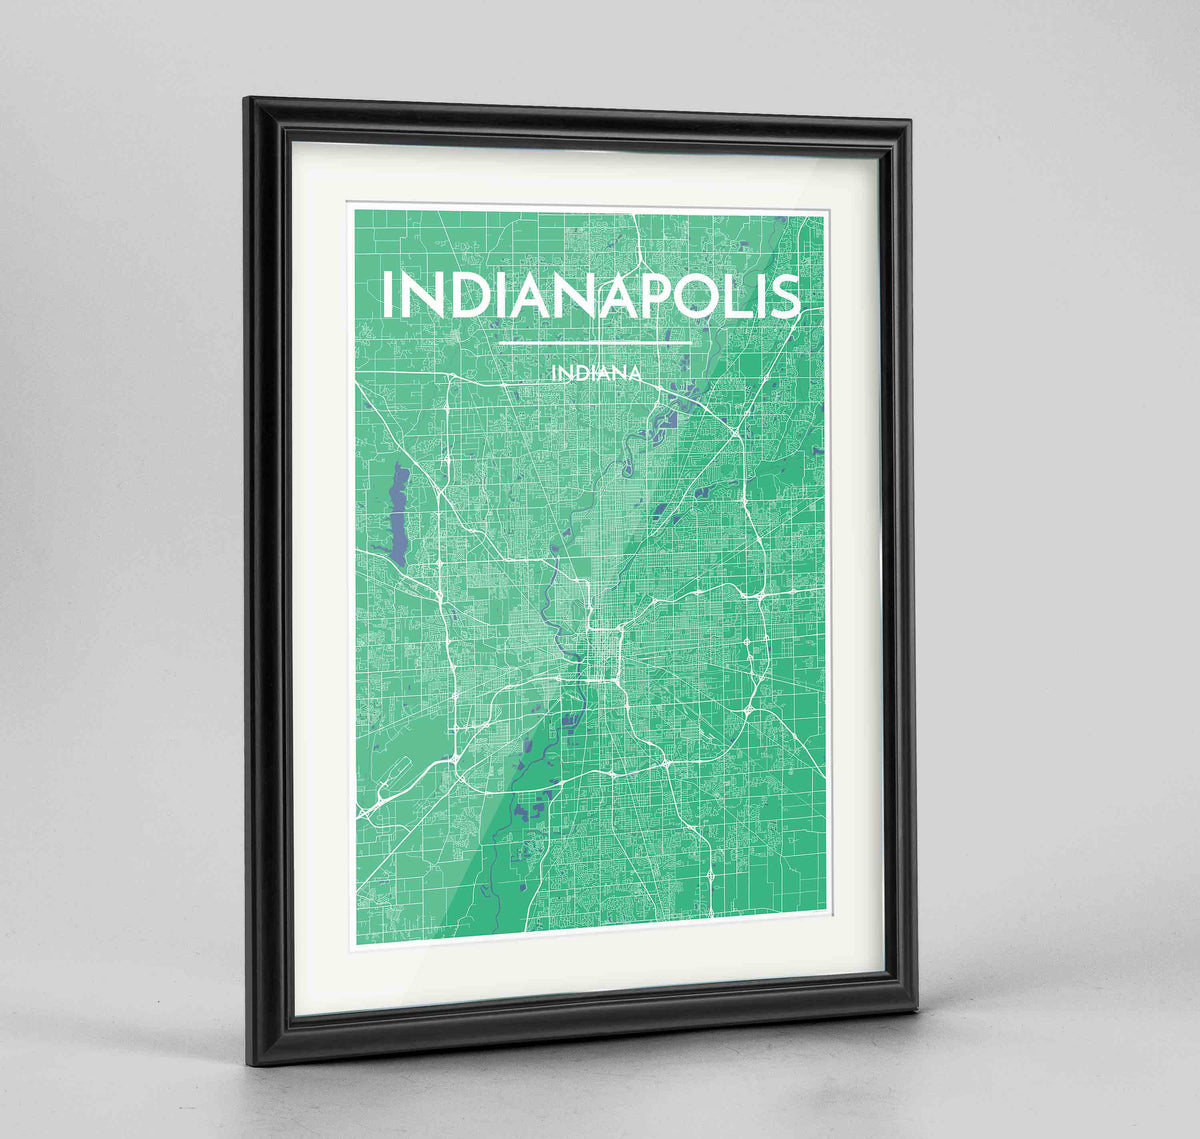 "Framed Indianapolis Map Art Print 24x36"" Traditional Black frame Point Two Design Group"